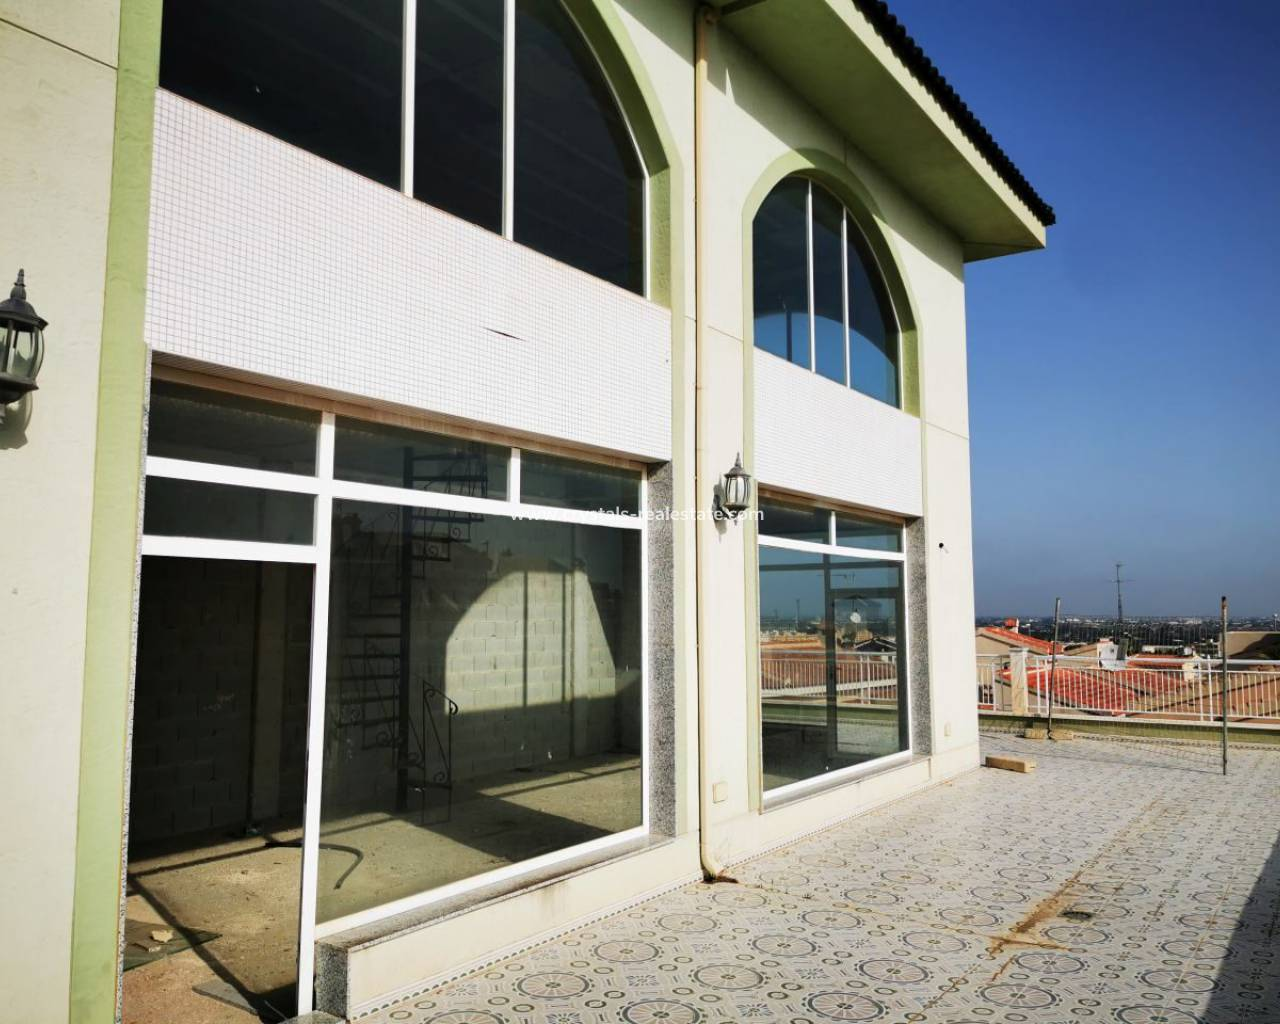 Commercial - Business for sale - Rojales - Benimar 2